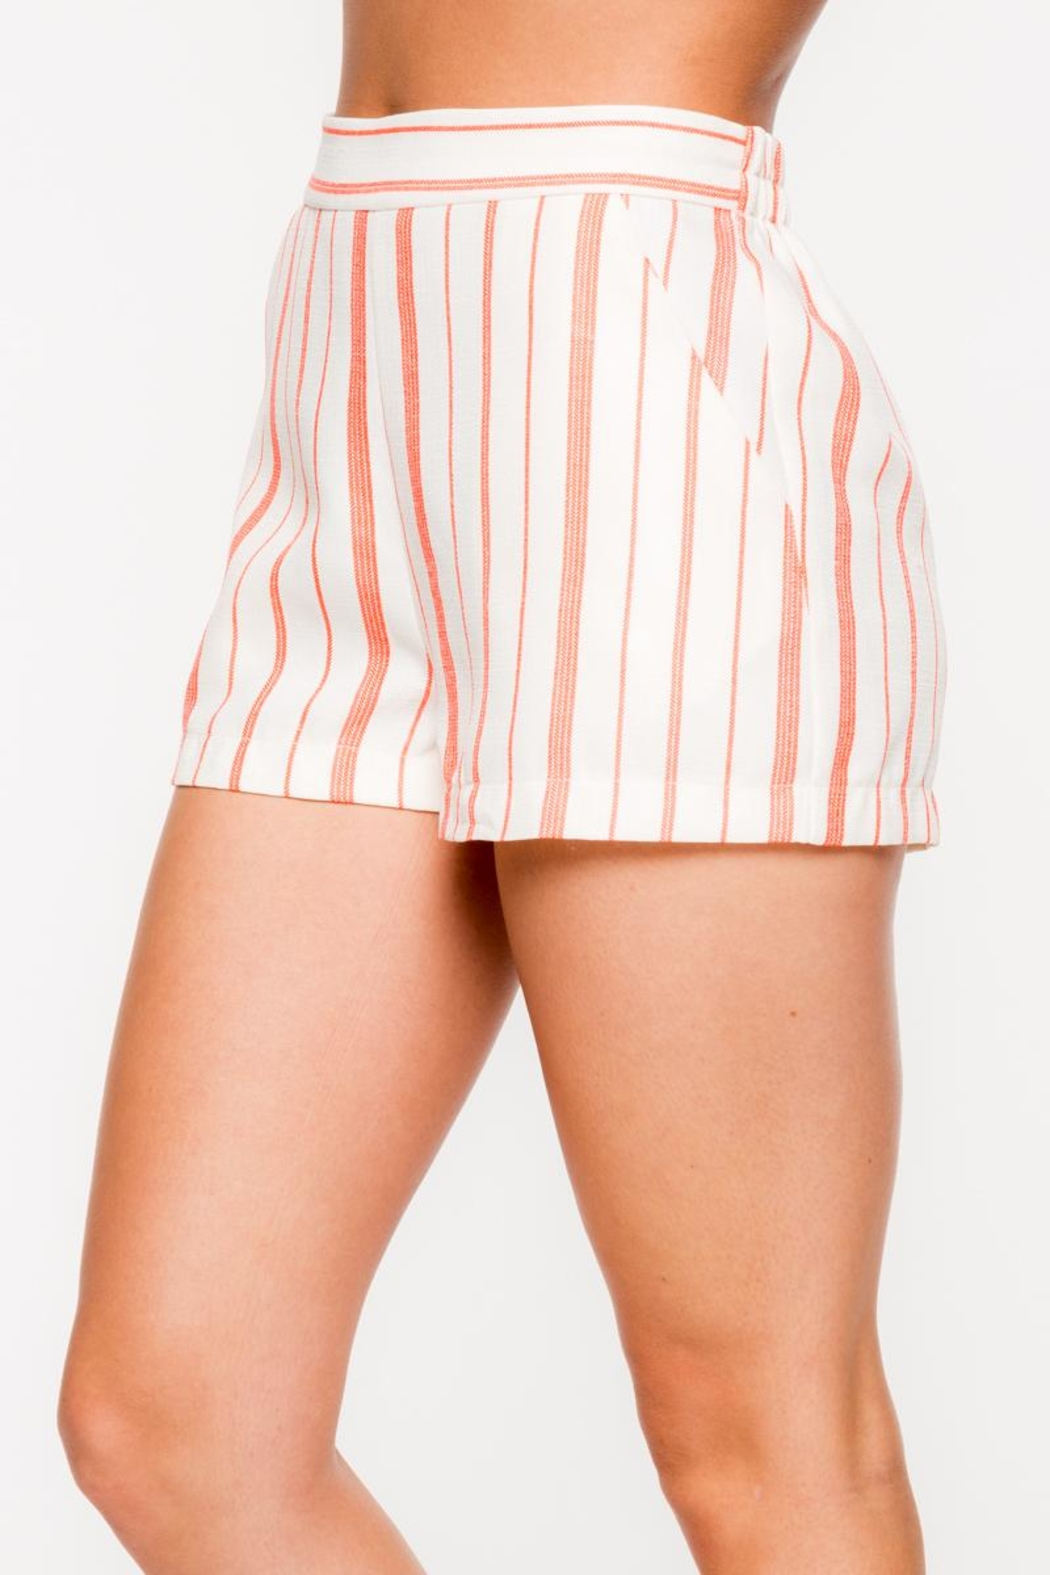 Everly Vertical Striped Shorts - Front Full Image